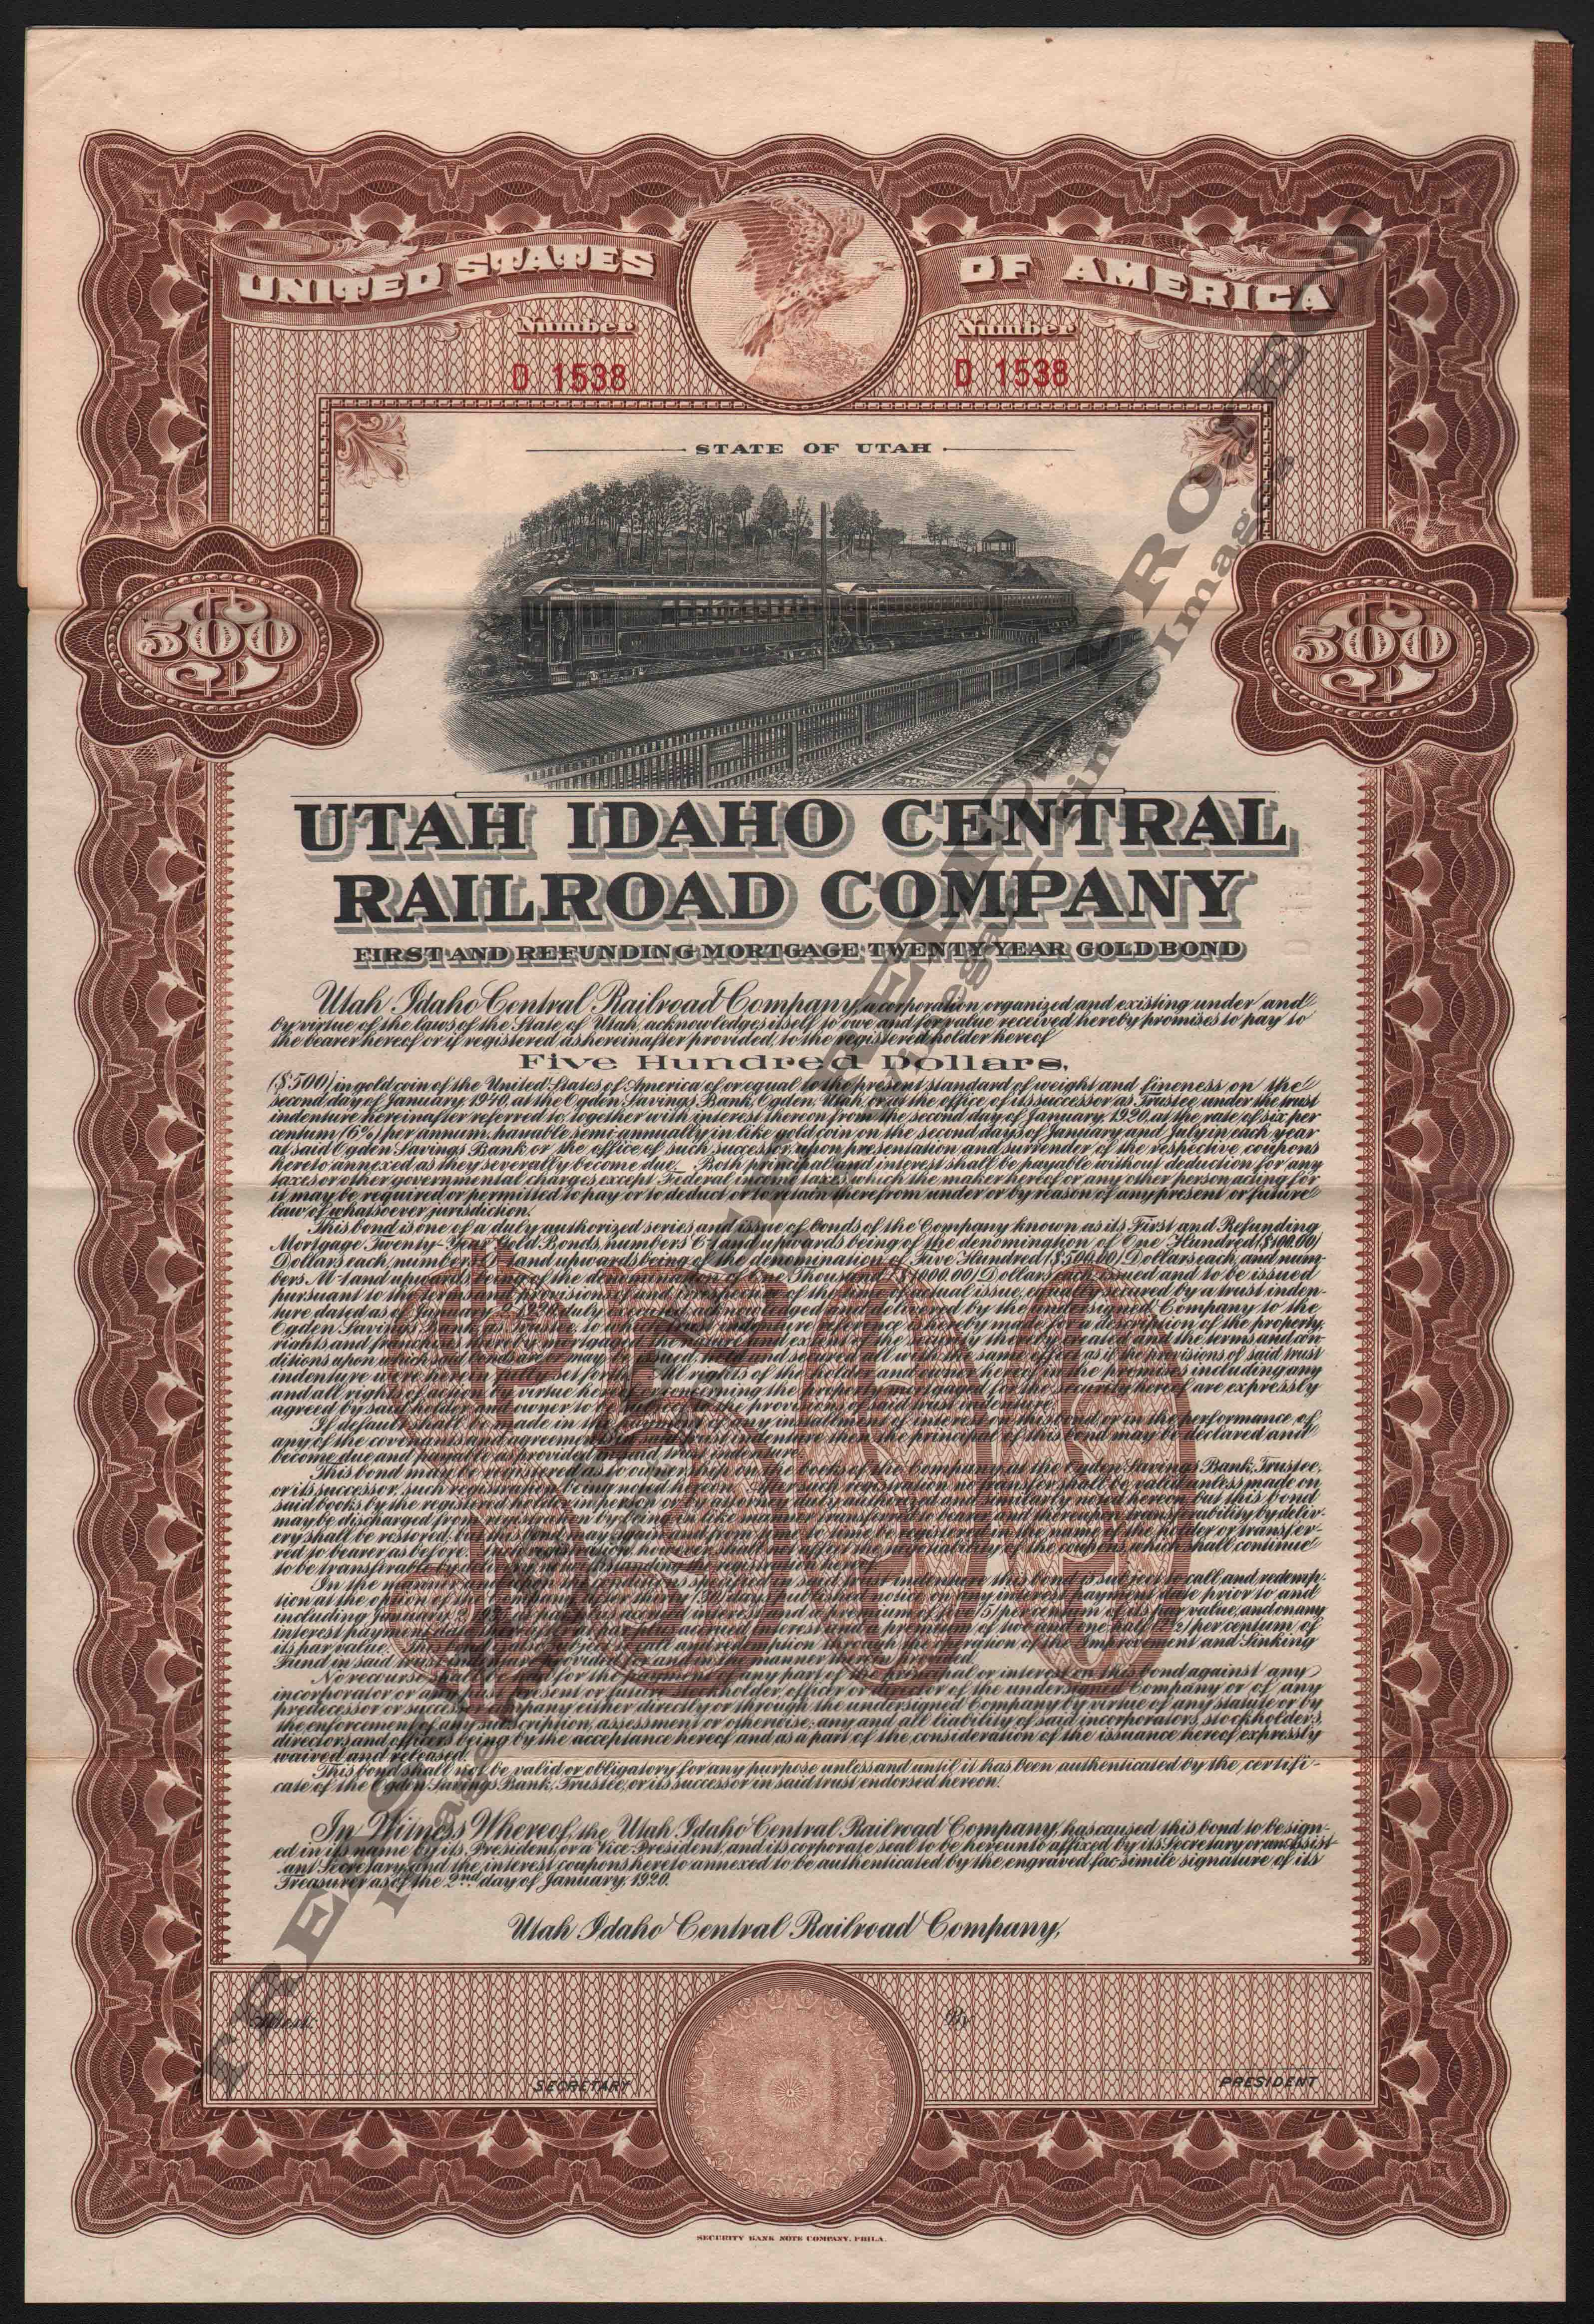 UTAH_IDAHO_CENT_RAILROAD_BOND_D1538_300_crop_emboss.jpg